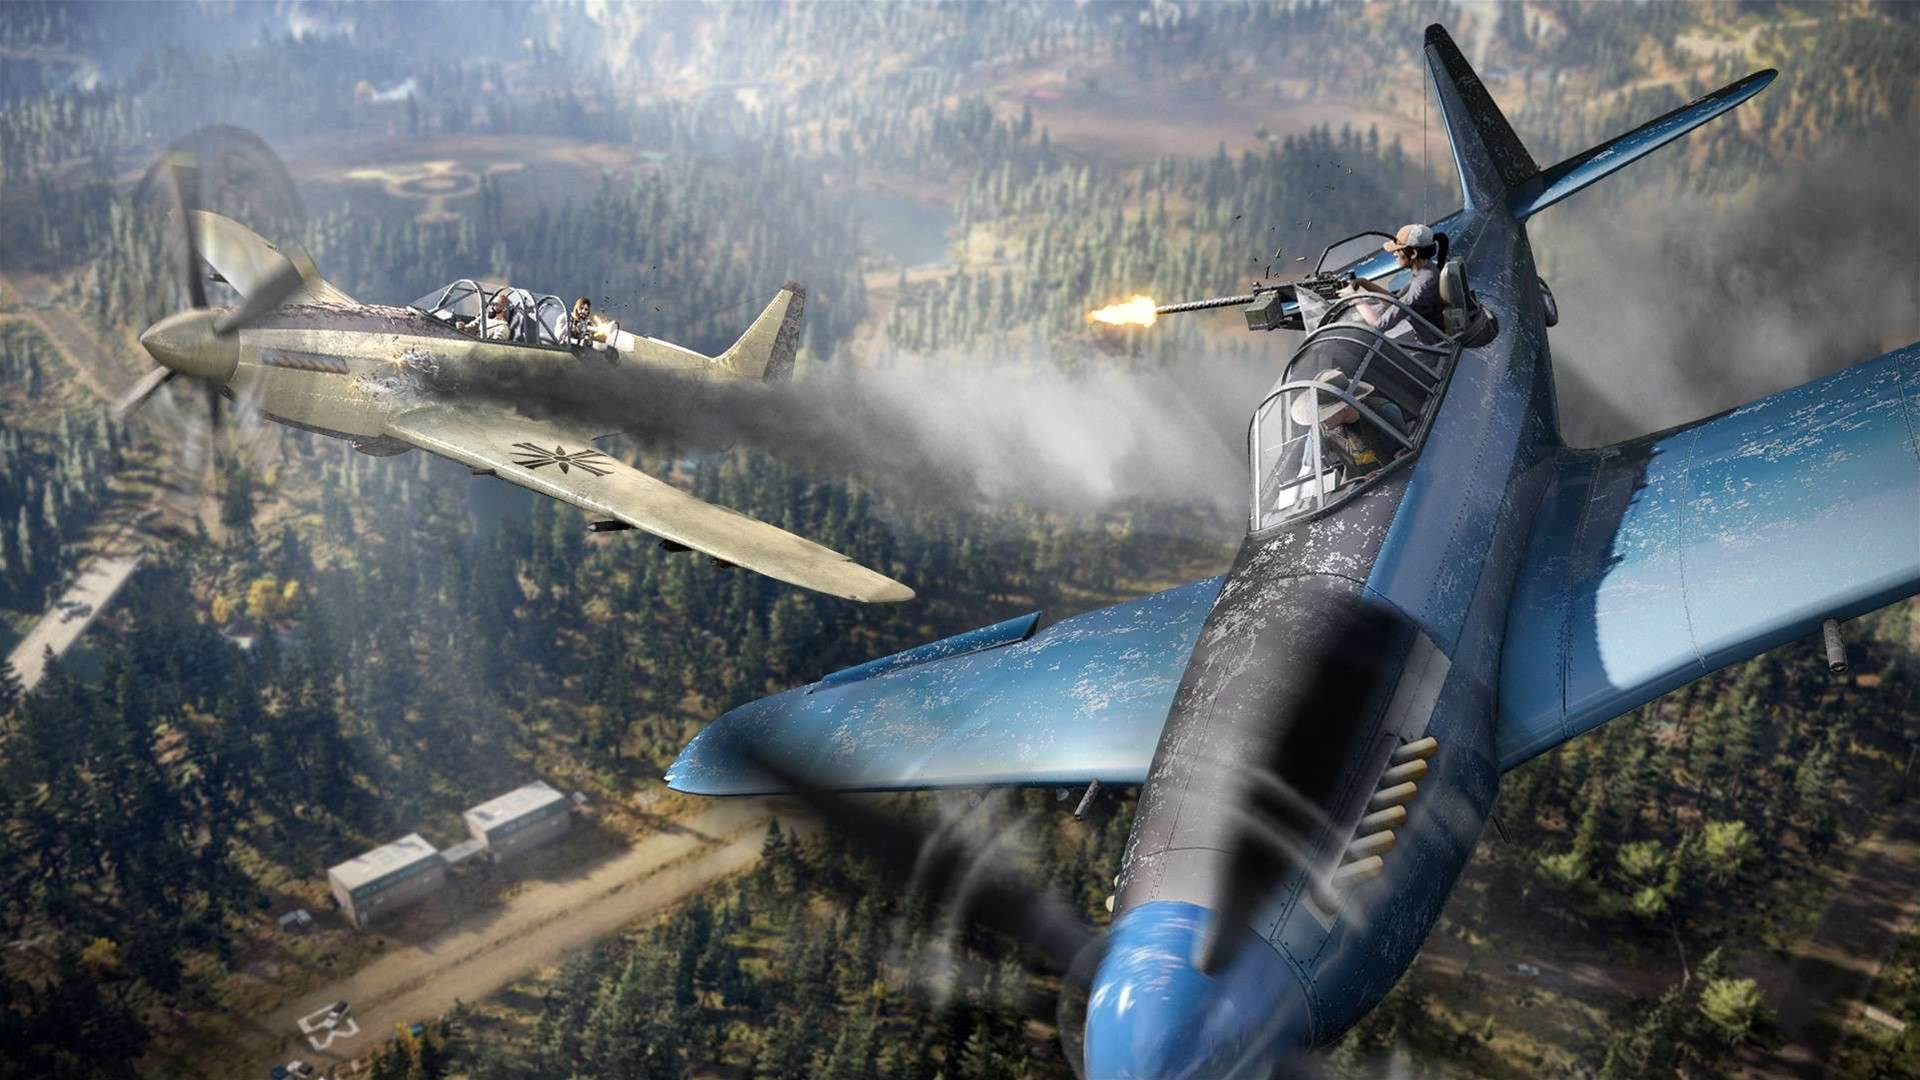 Prepare for lift-off with these Far Cry 5 launch screens